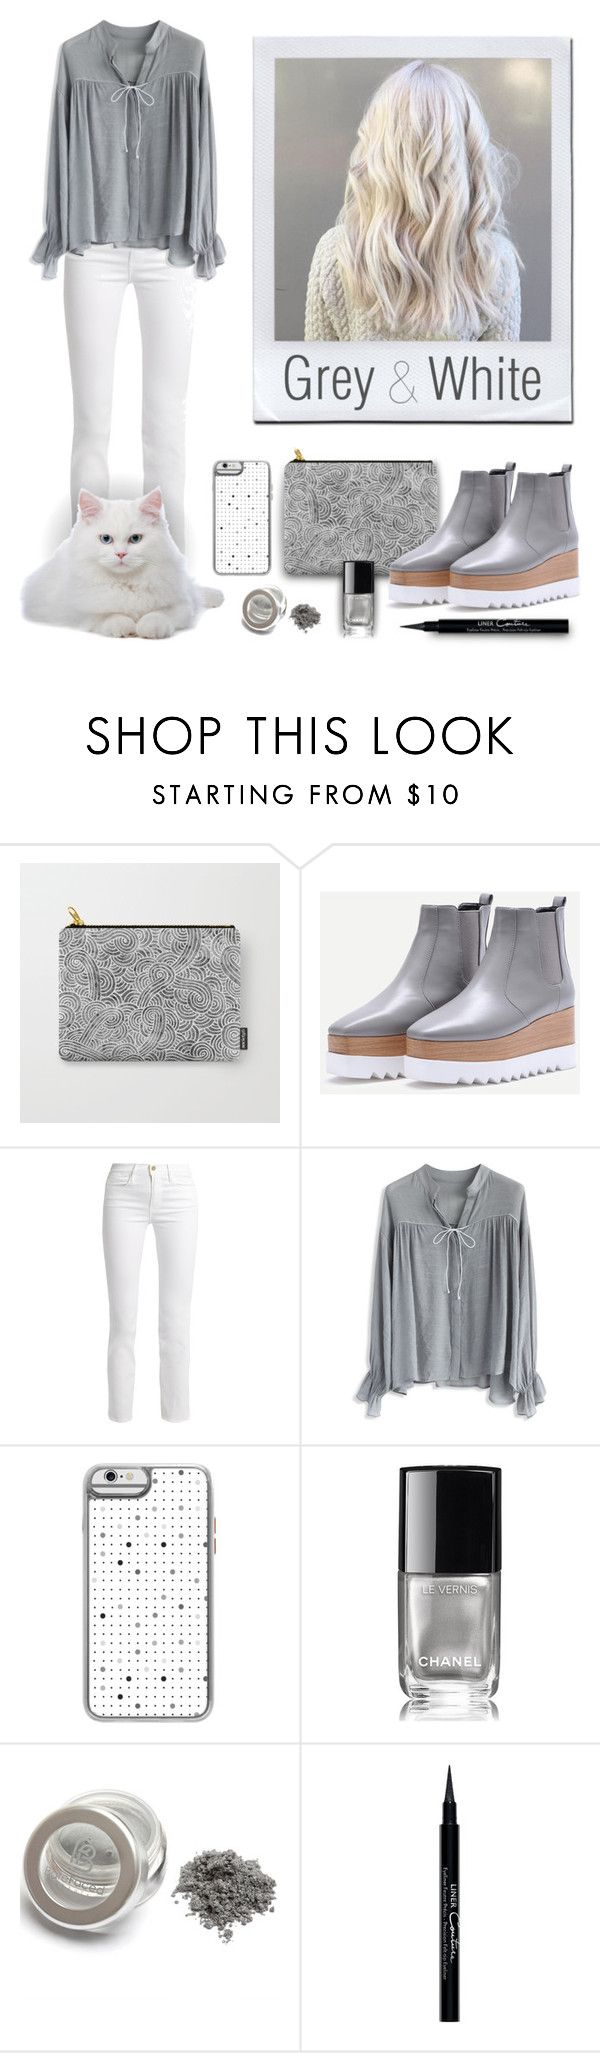 Light grey & White Women outfit by @savousepate on @polyvore